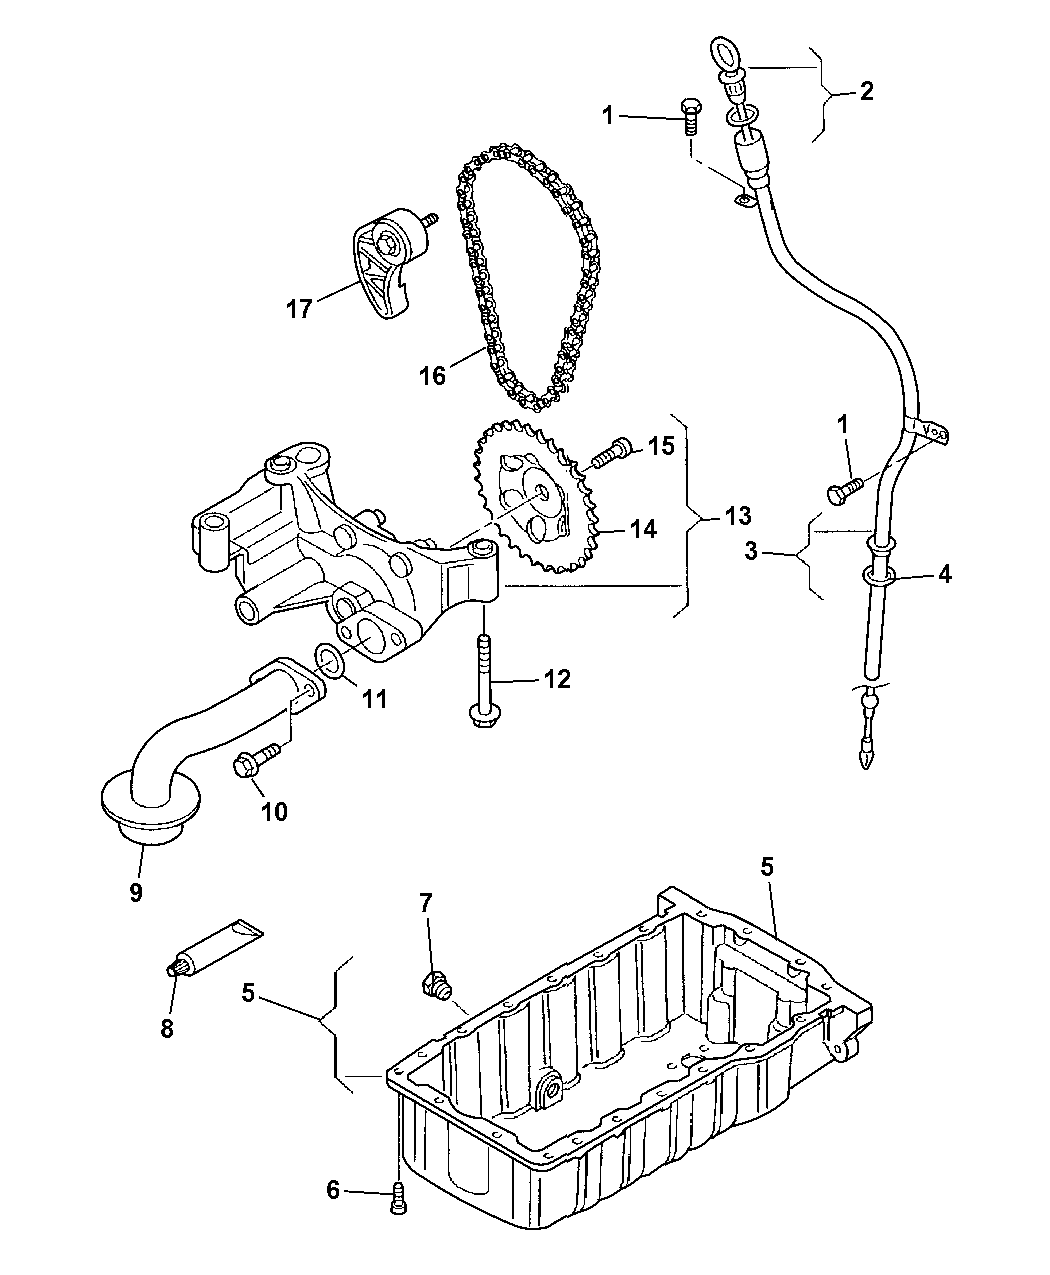 Circuit Electric For Guide: 2007 Jeep Compass Engine Diagram